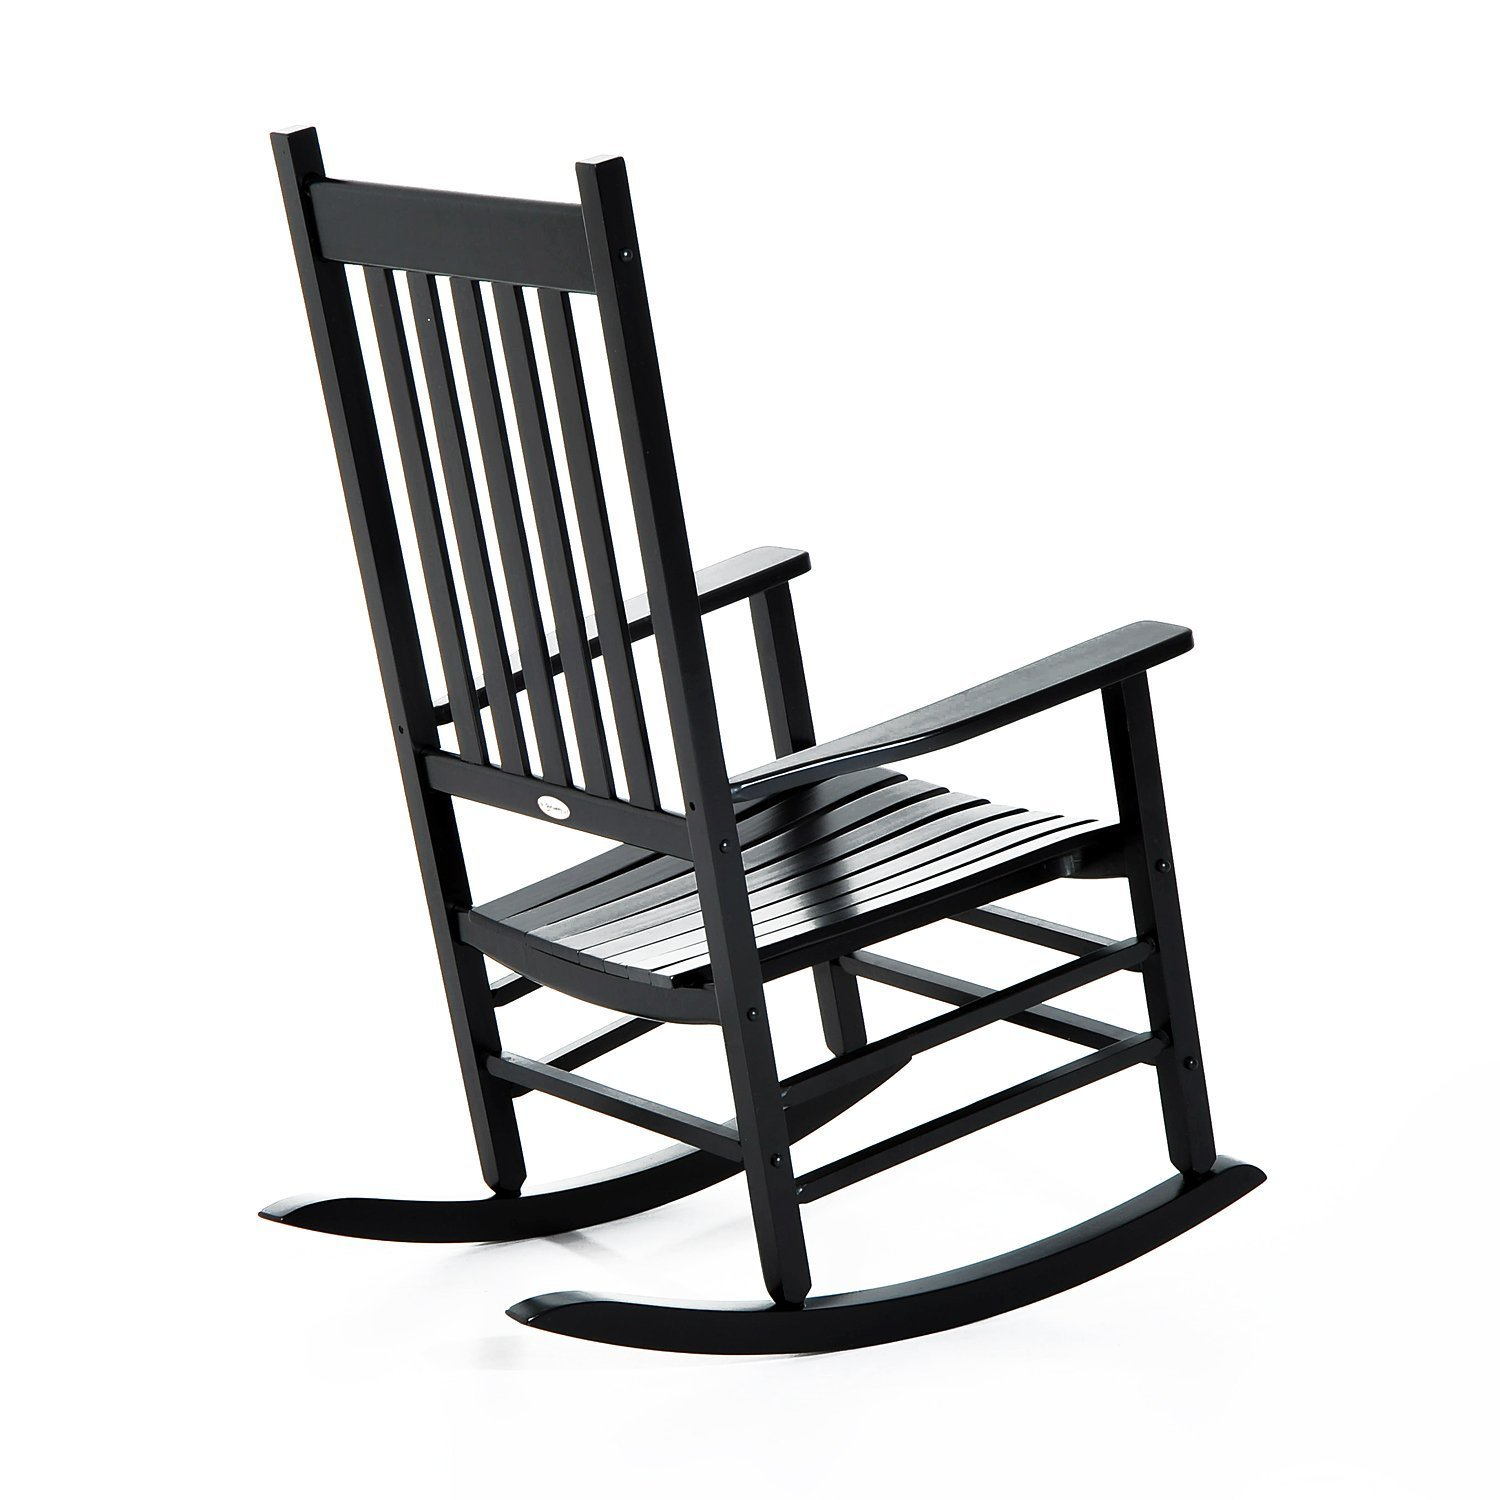 Outsunny Porch Rocking Chair - Outdoor Patio Wooden Rocker - Black by Outsunny (Image #3)